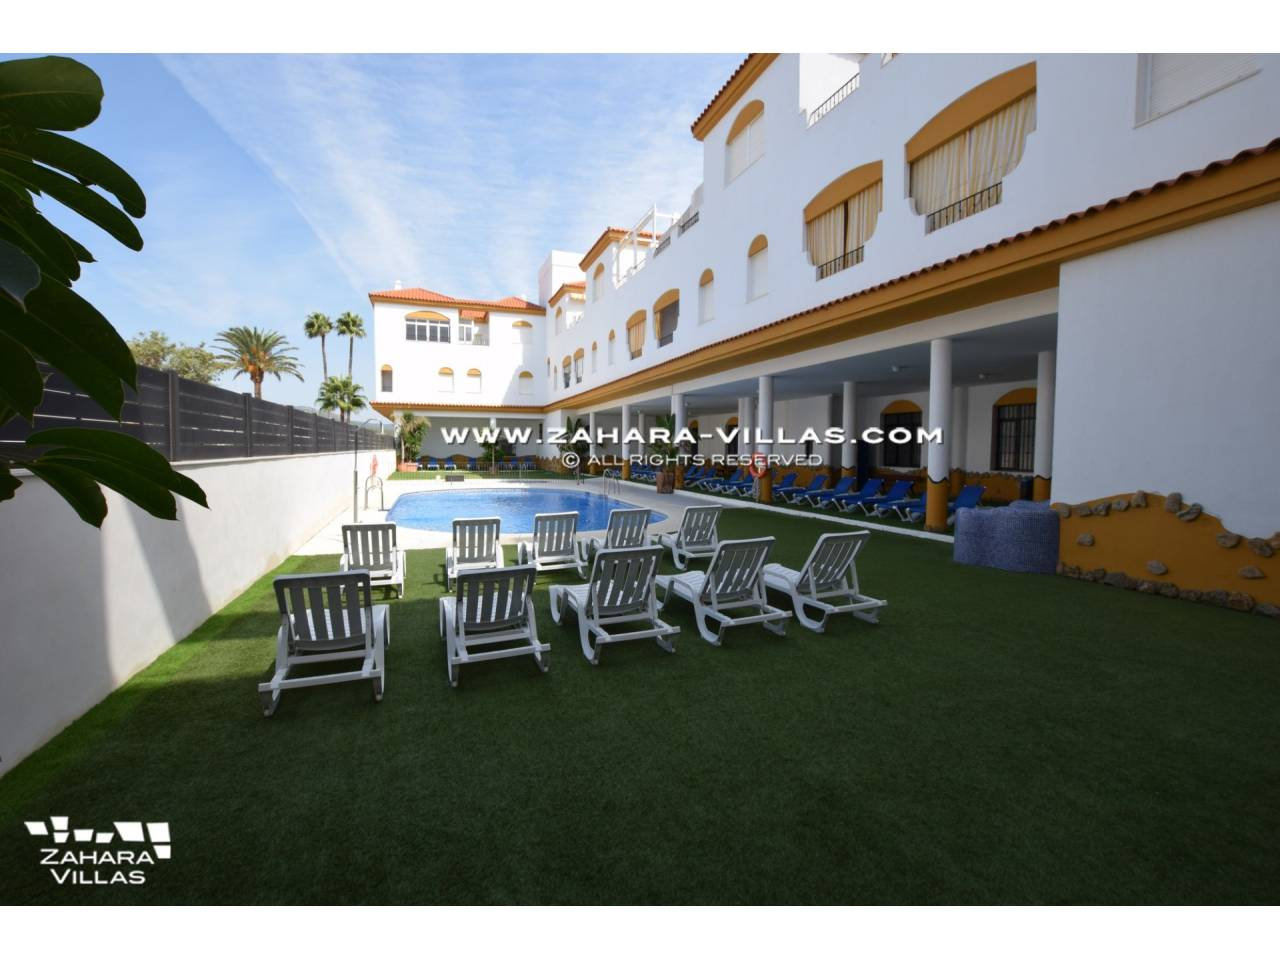 Imagen 37 de Amazing Apartment for sale in Zahara de los Atunes